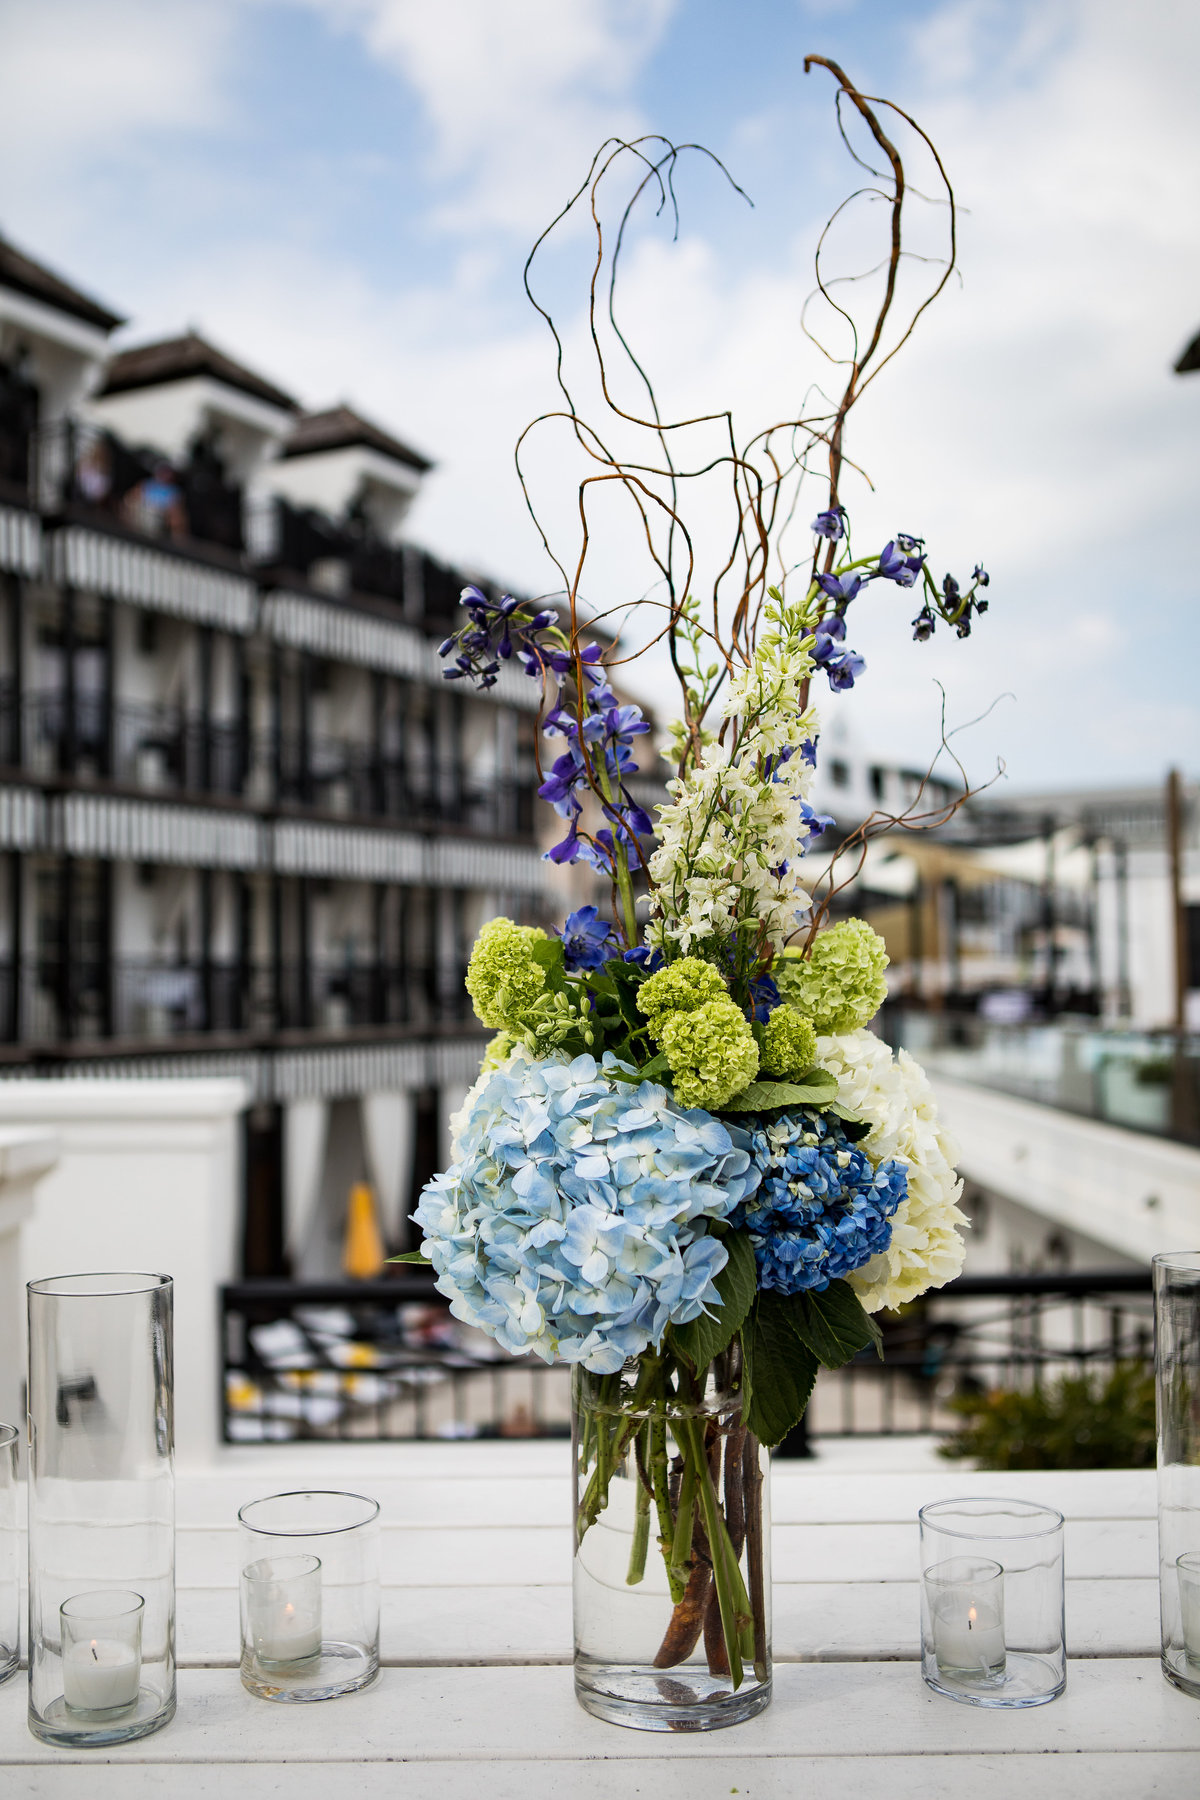 rosemary beach wedding photographer, gwyne gray photography